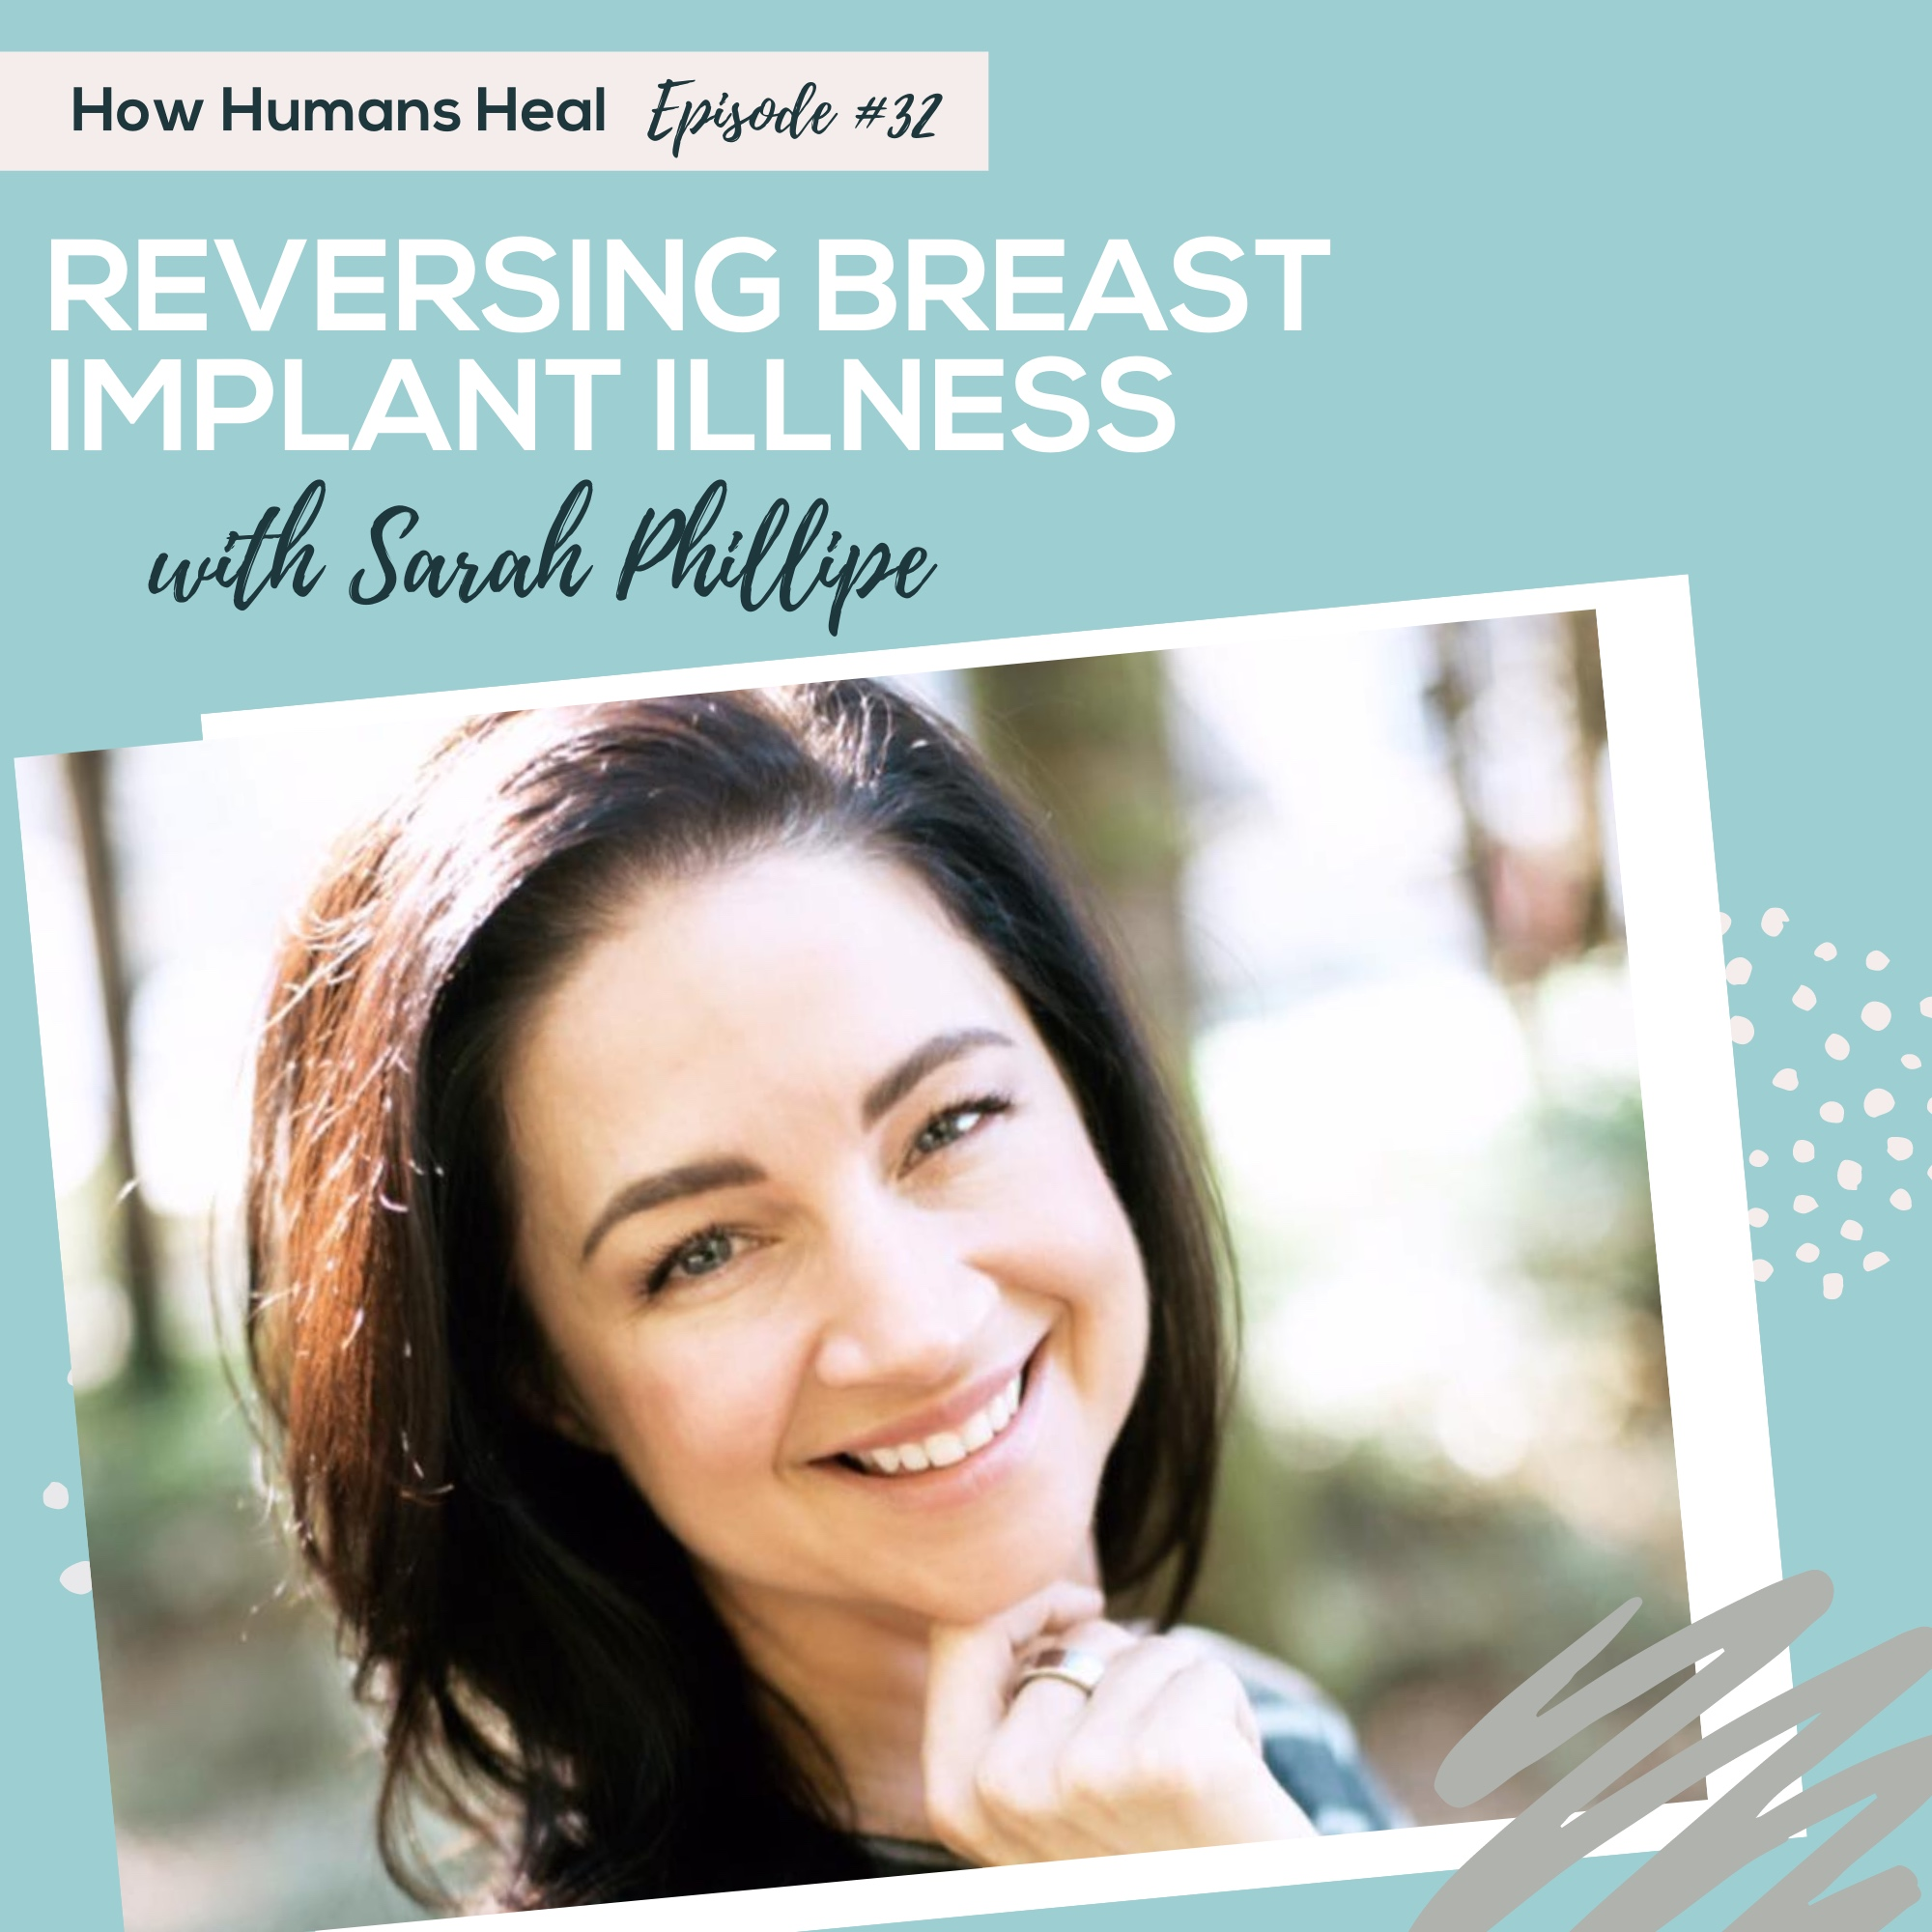 How Humans Heal Podcast